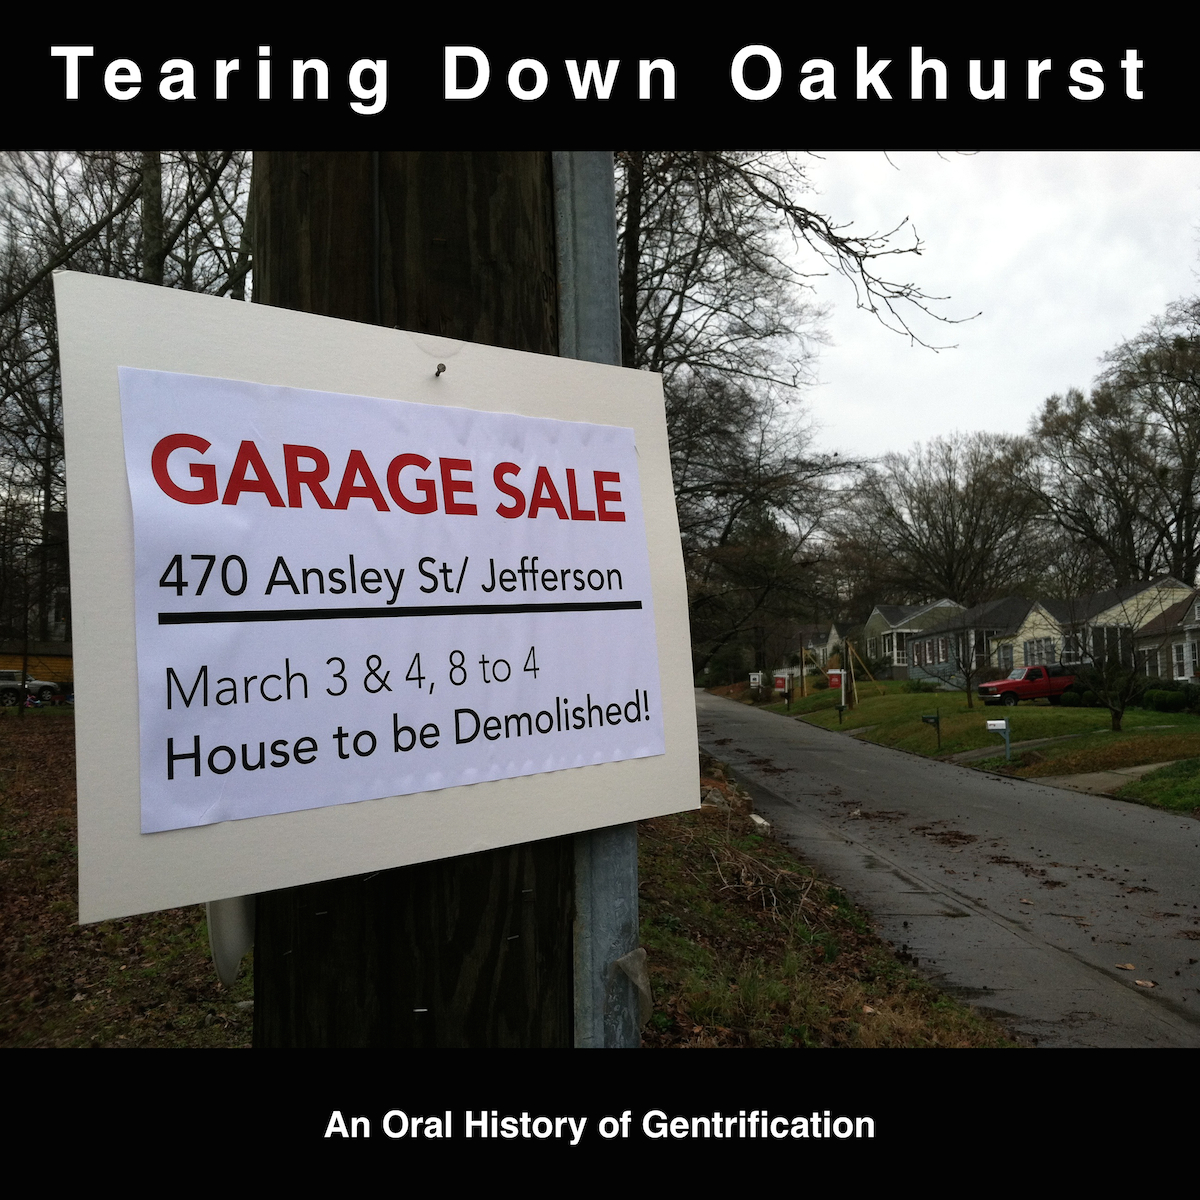 Tearing Down Oakhurst documentary video